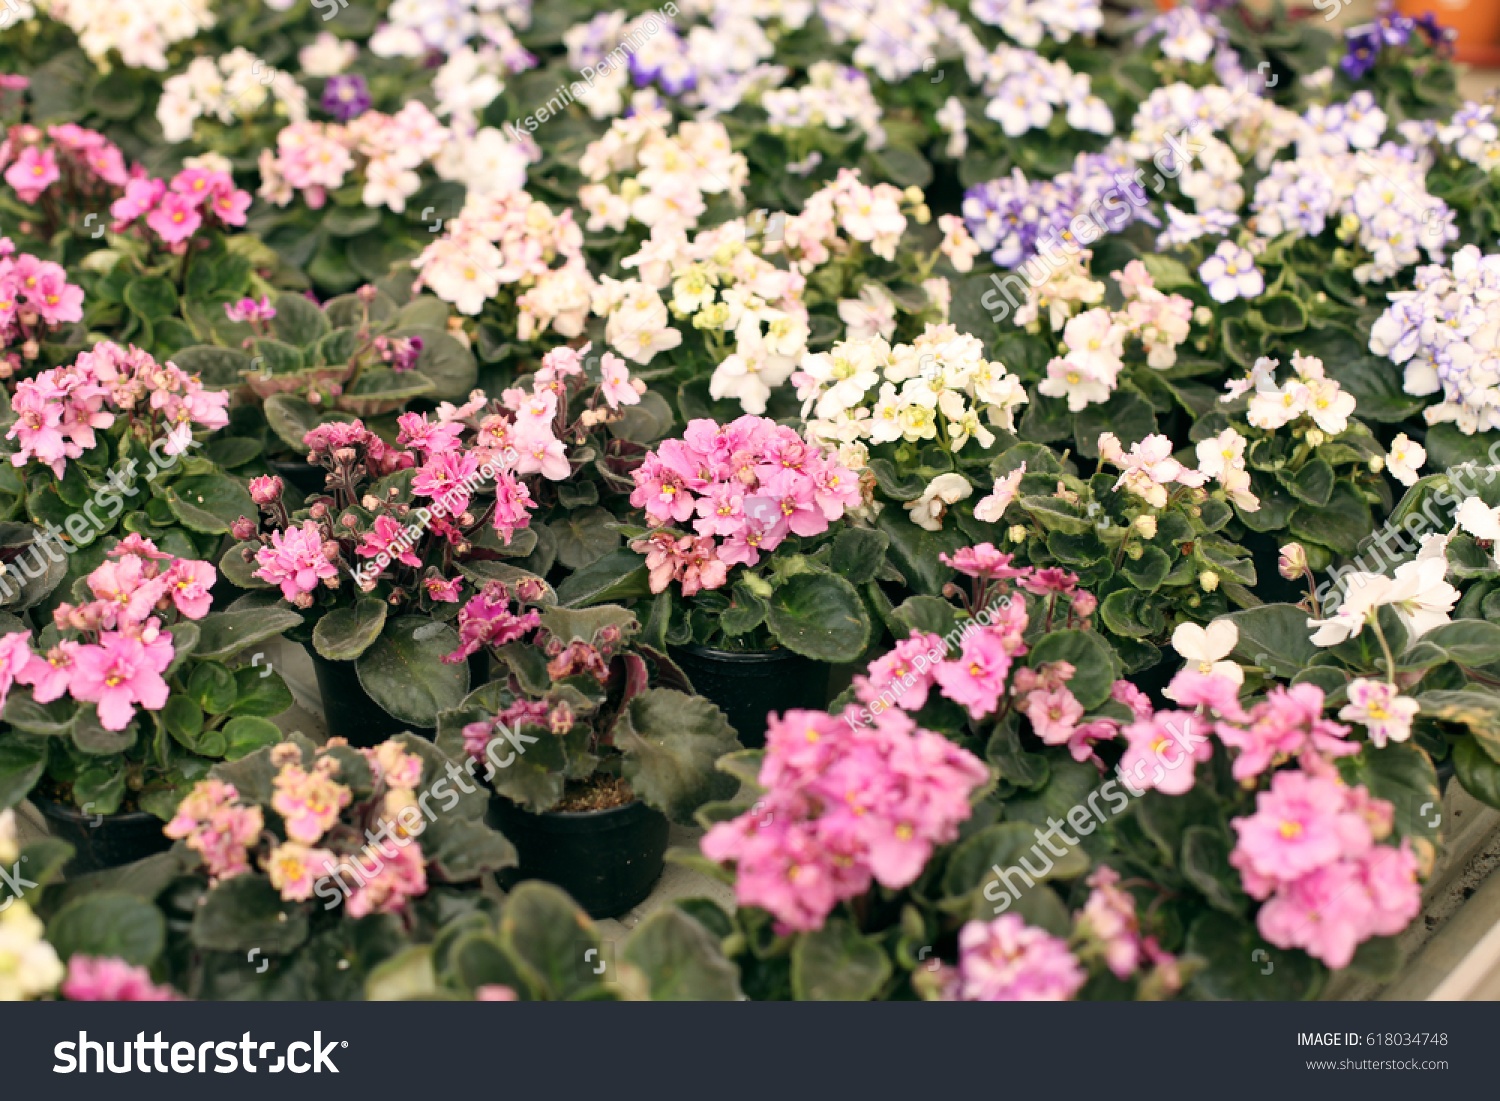 Beautiful Flowering Houseplants Flowers In The Greenhouse In The